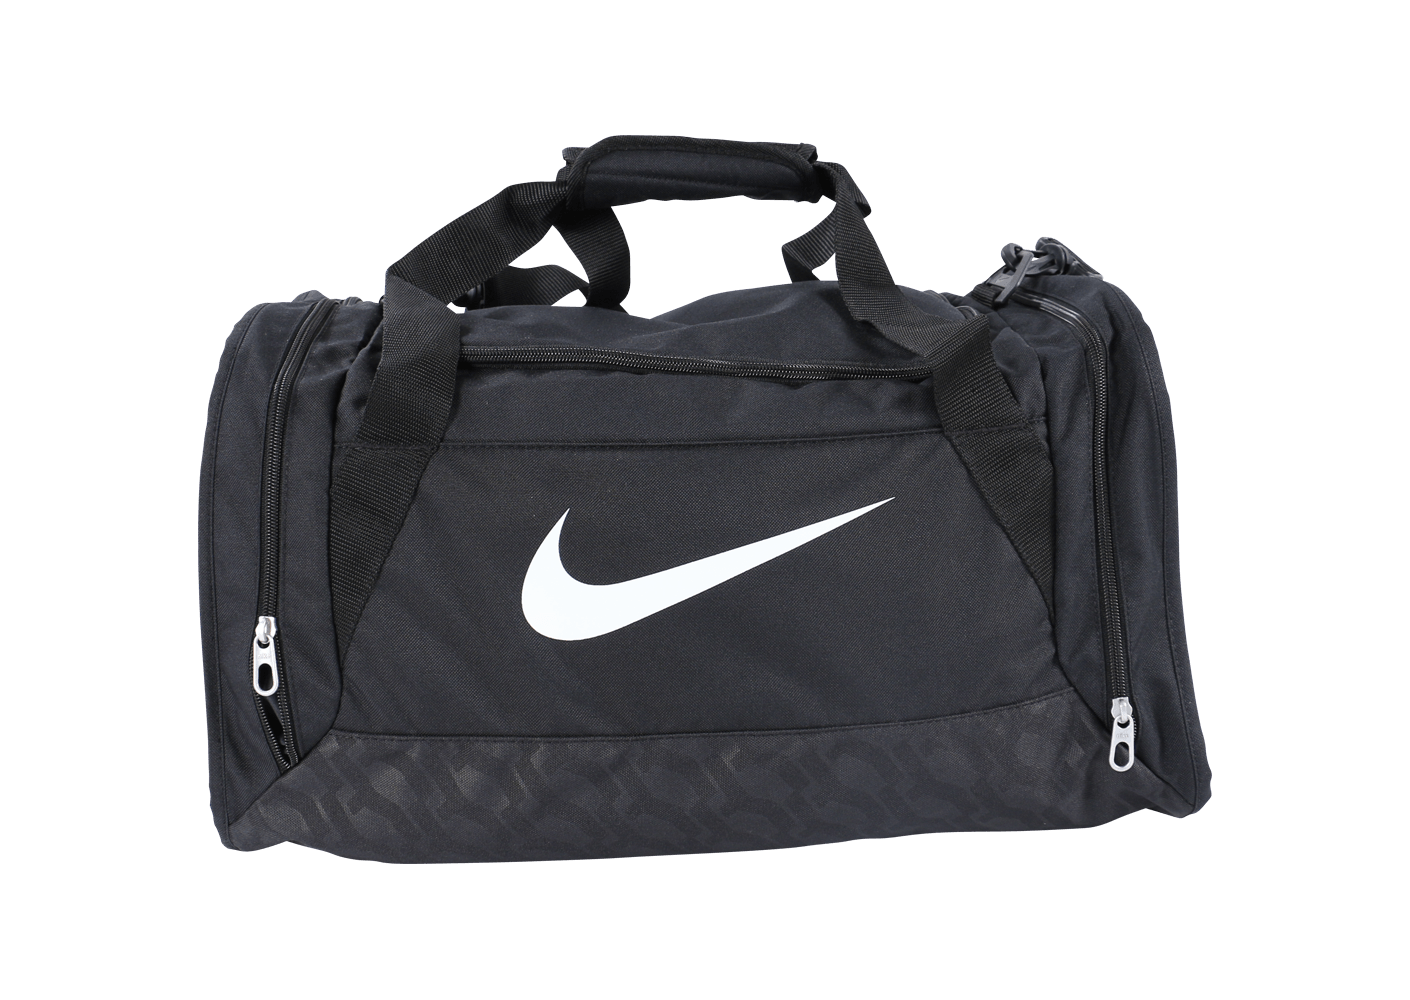 nike sac de sport brasilia noir 50 sur le 2e article chausport. Black Bedroom Furniture Sets. Home Design Ideas